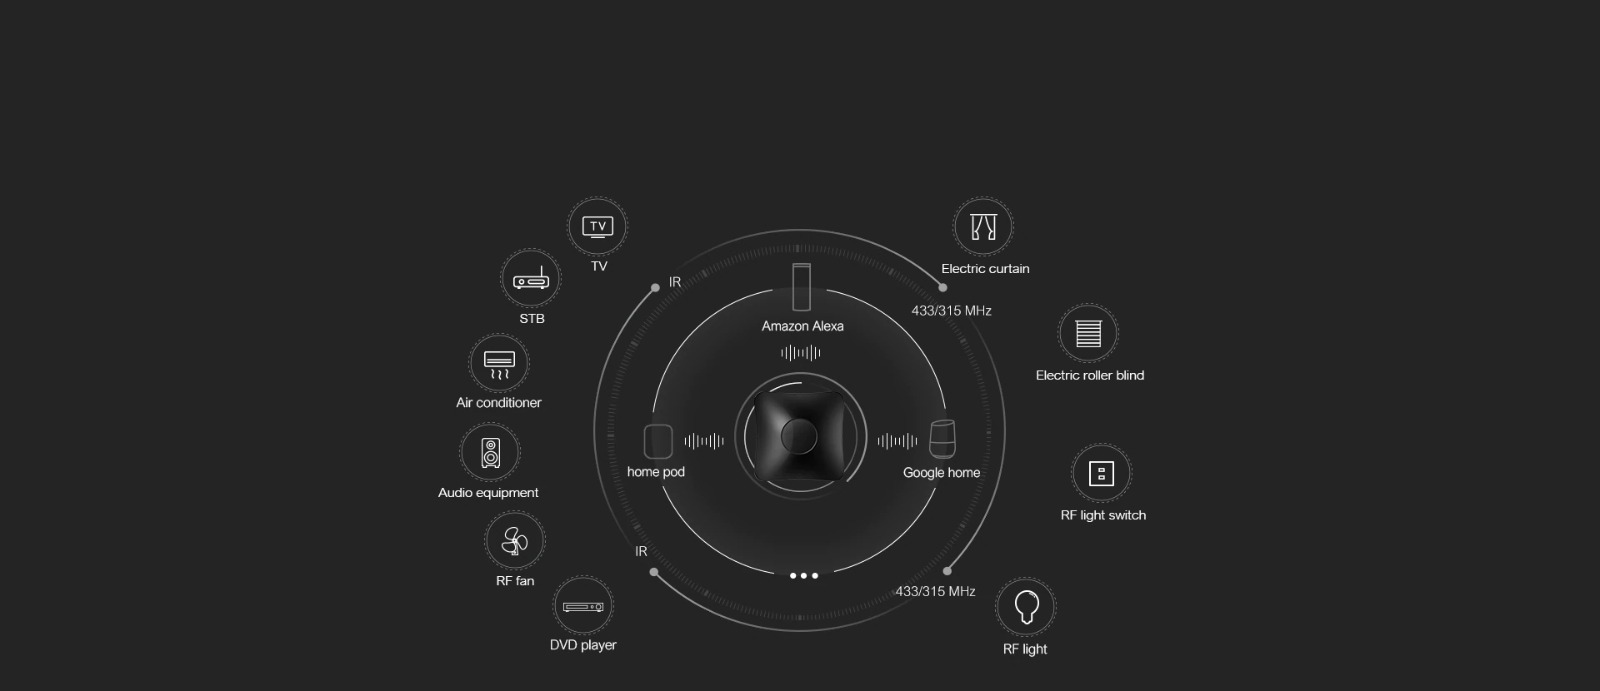 Broadlink RM4 Pro IR/RF Universal Remote Smart Home Automation works with Alexa and Google Home